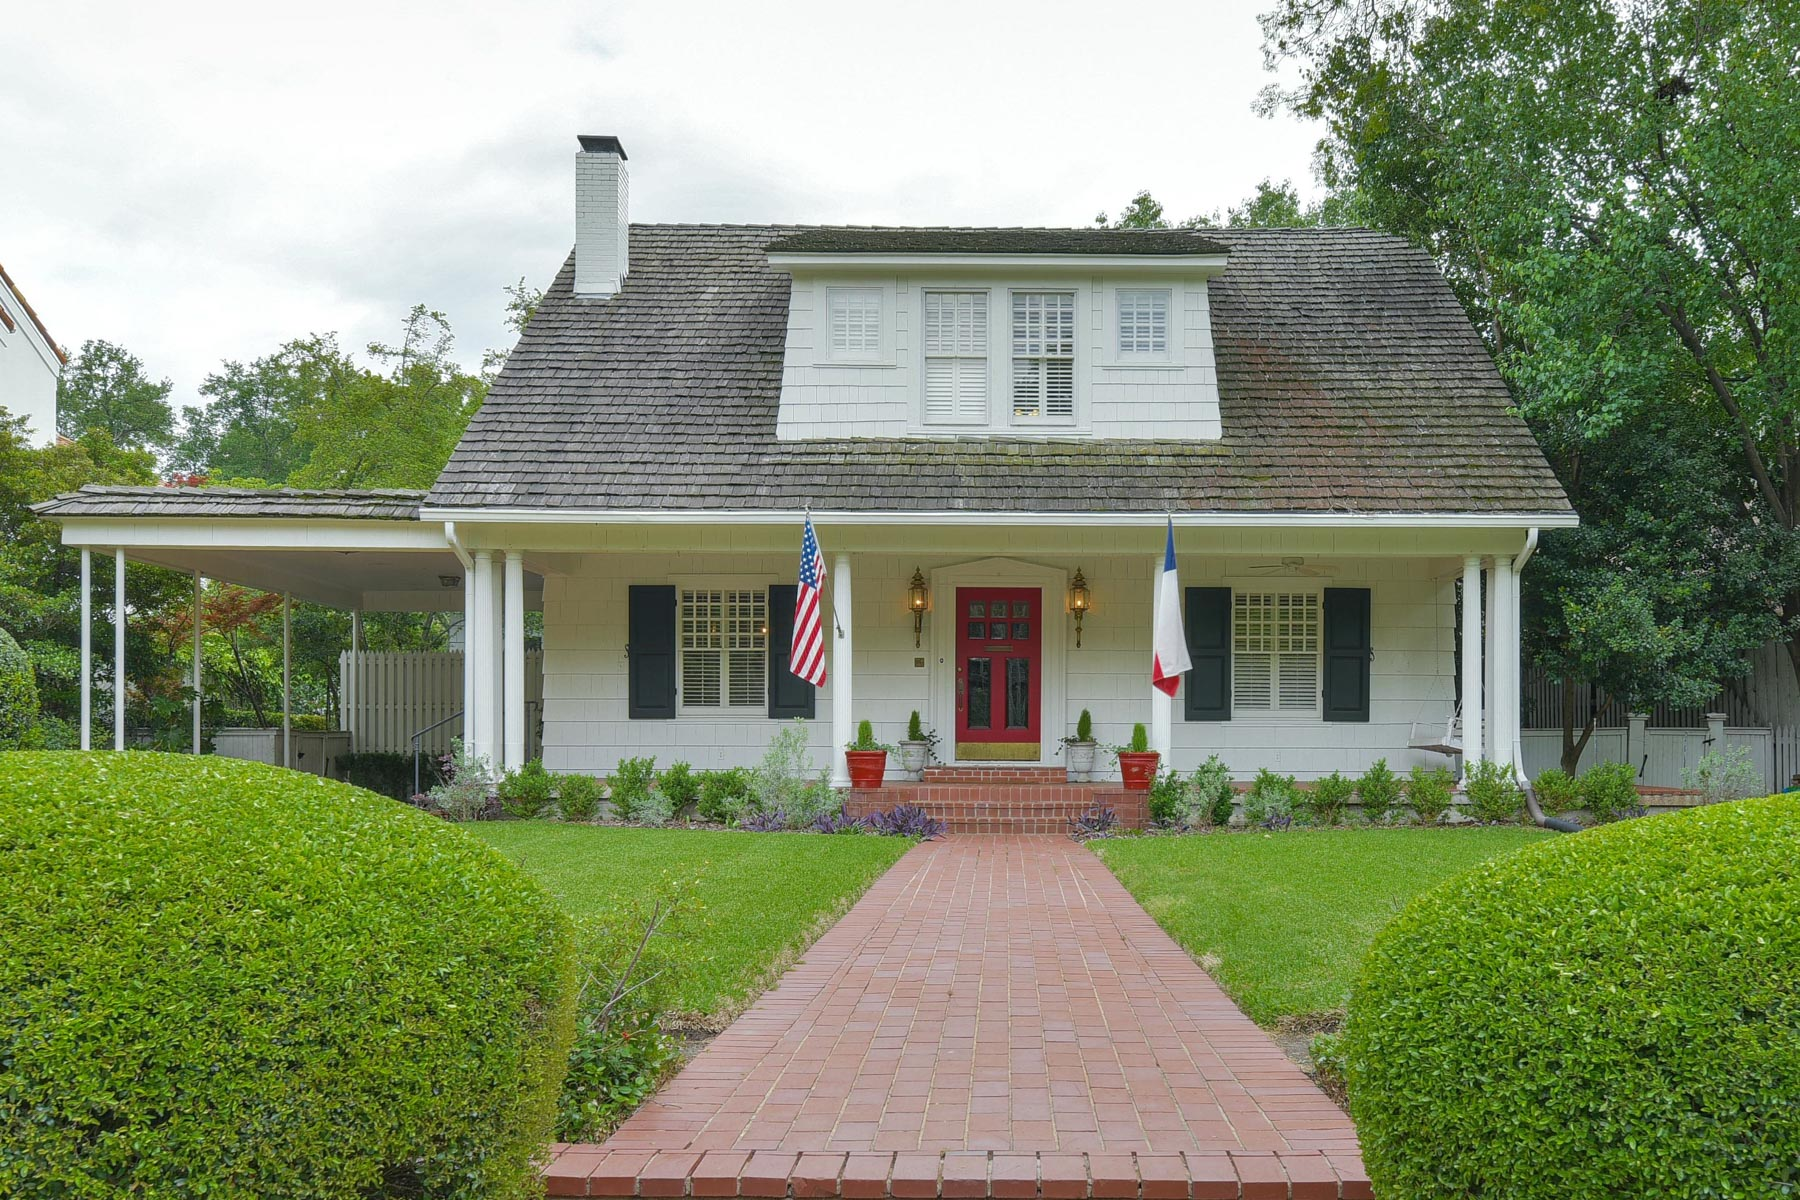 Maison unifamiliale pour l Vente à Historical Highland Park Traditional 3917 Euclid Ave Dallas, Texas, 75205 États-Unis